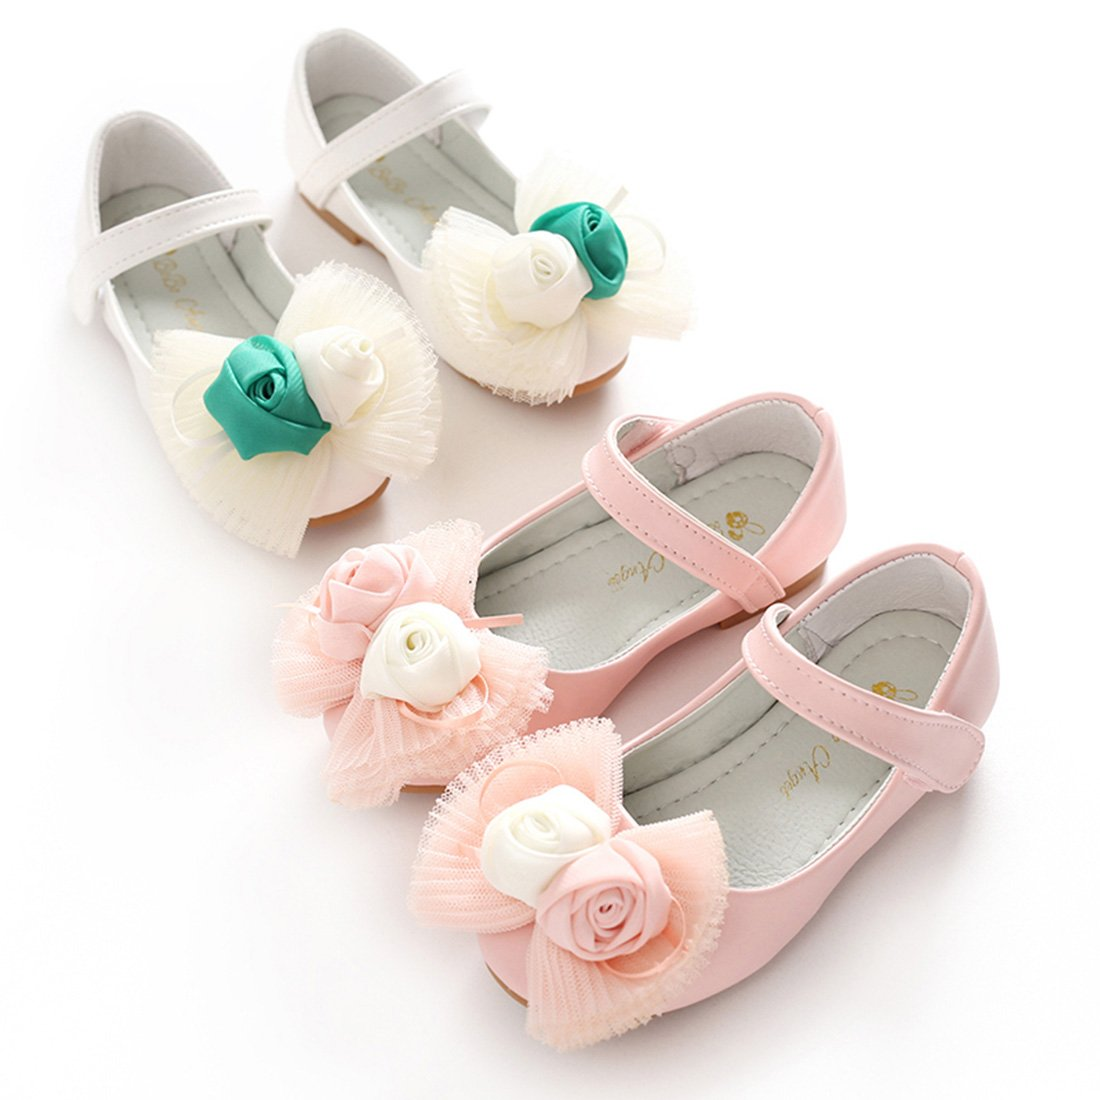 YIBLBOX Toddler Kids Girls Princess Dress up Shoes Flower Lace Ballet Flats Wedding Dancing Mary Janes